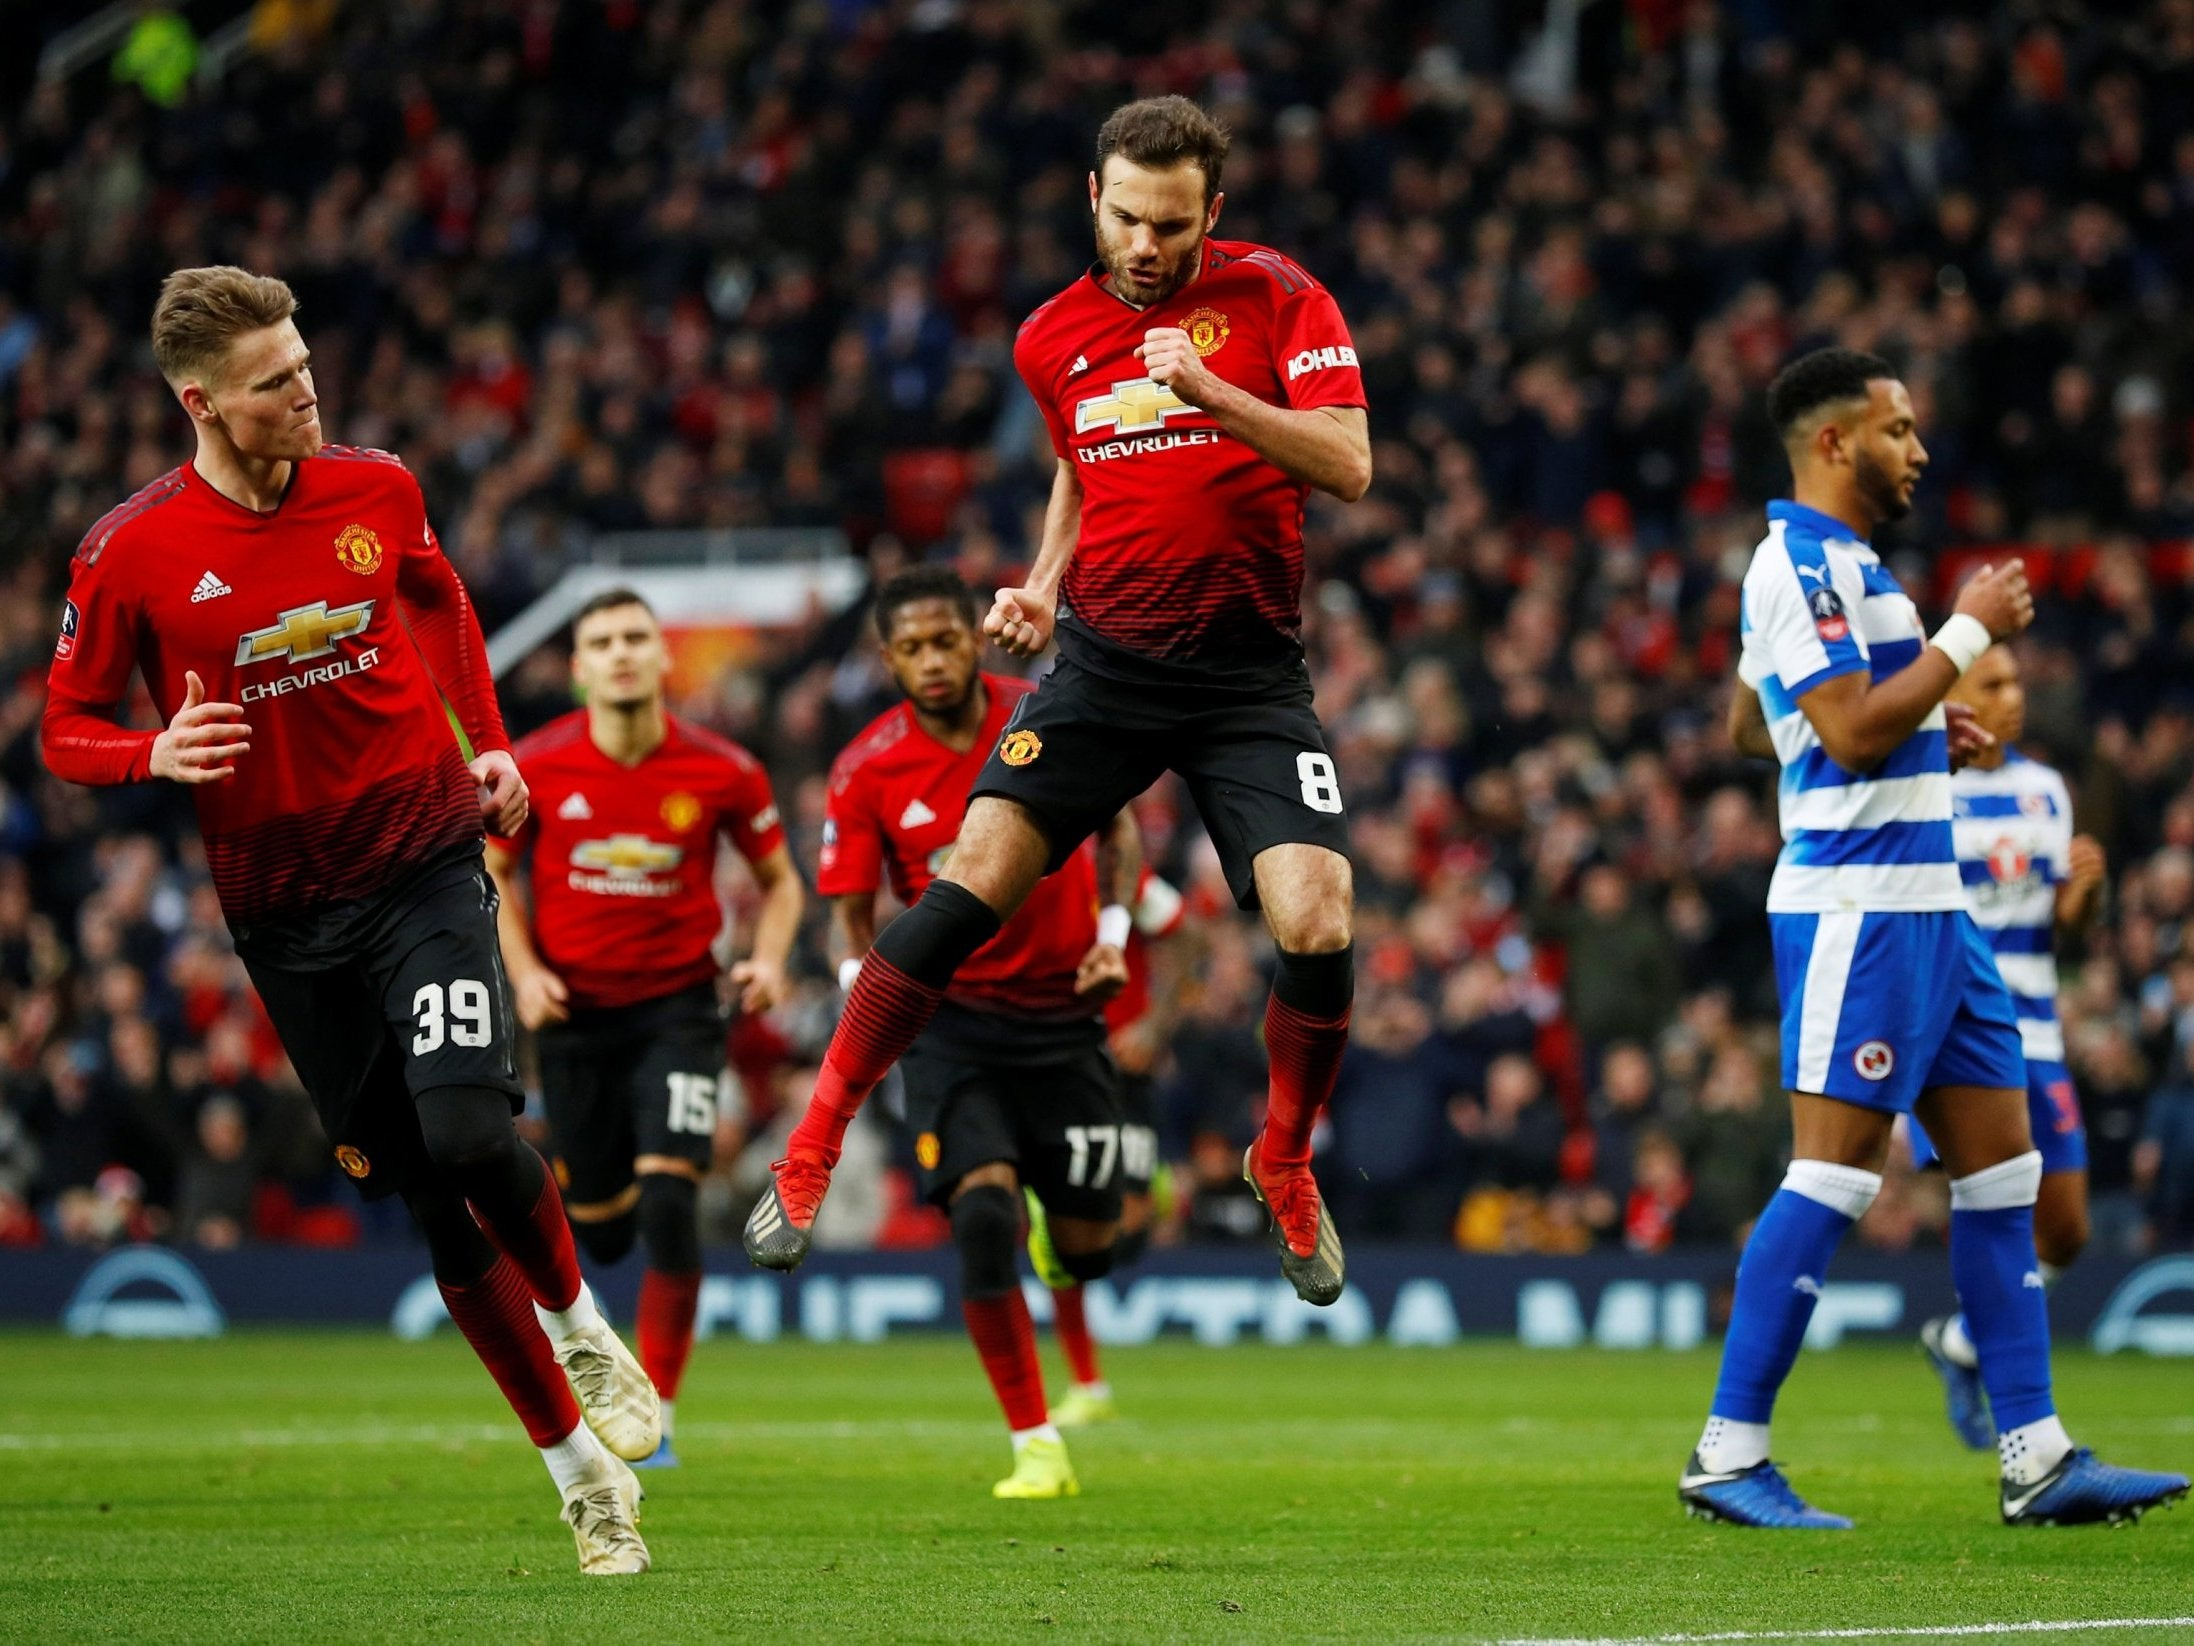 Manchester United vs Reading - LIVE: Score, goals and latest updates